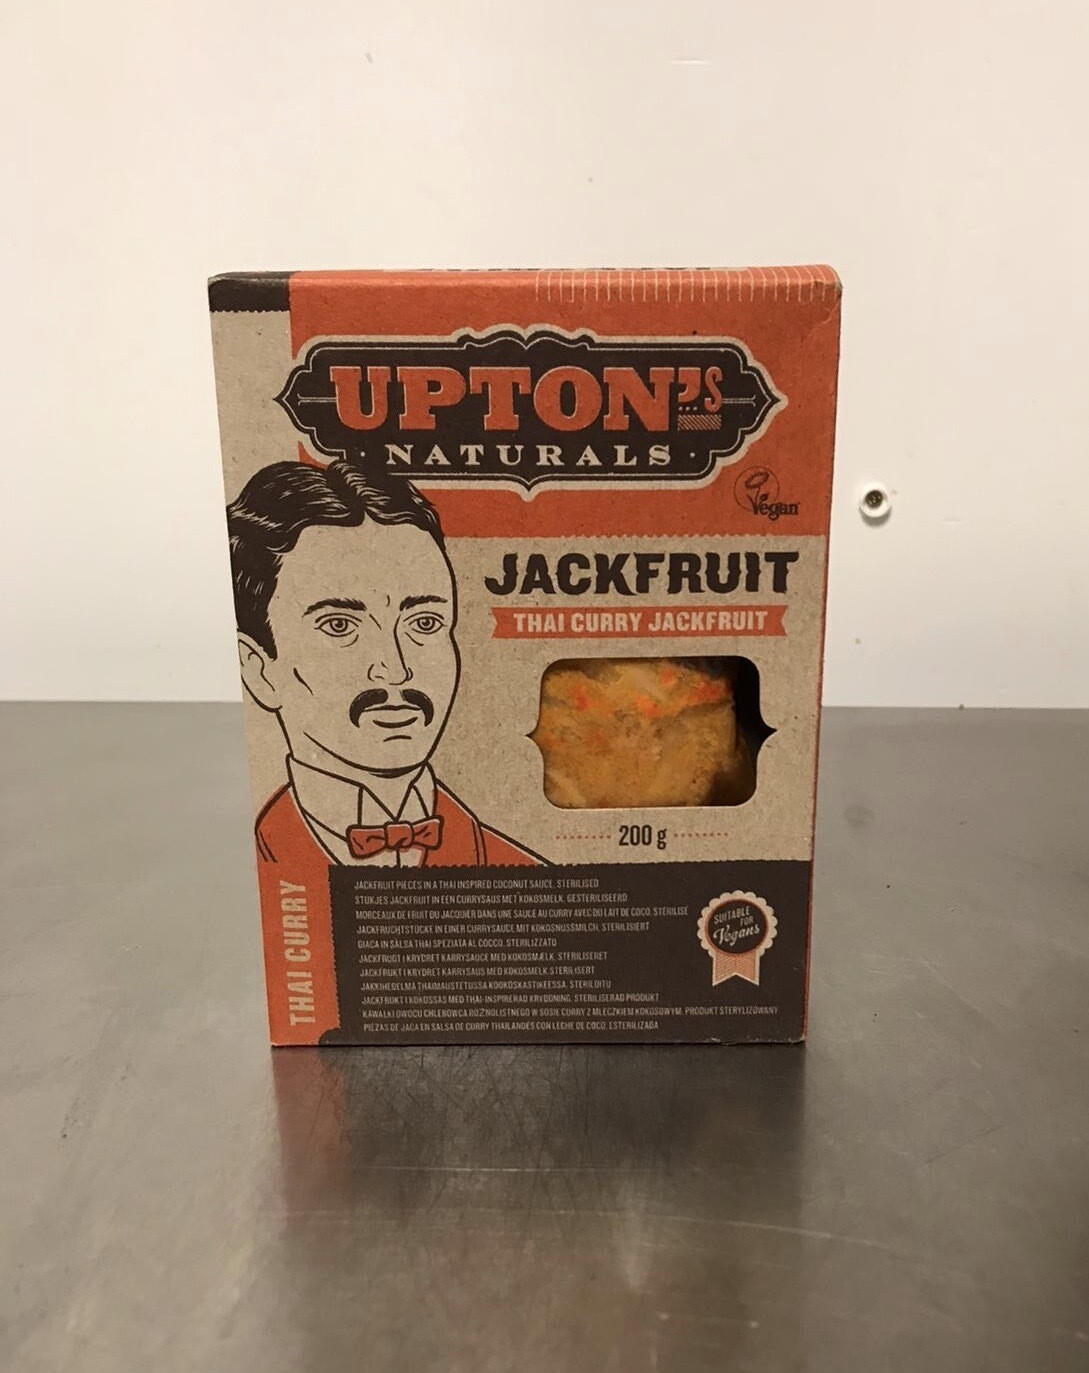 Upton's Natural Jackfruit Original Thai Curry